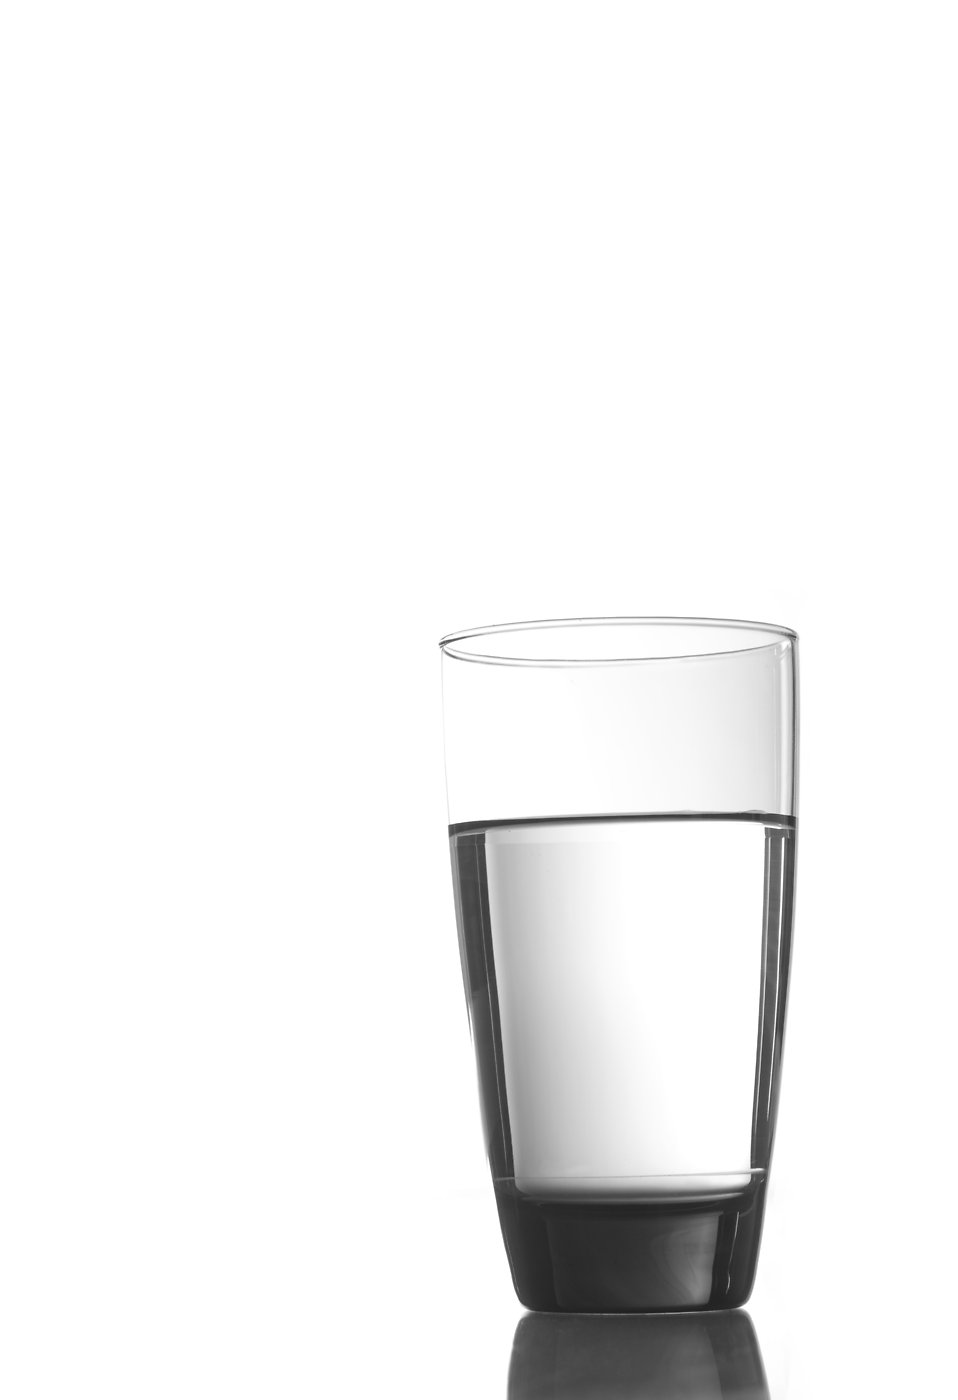 A glass of clean drinking water : Free Stock Photo